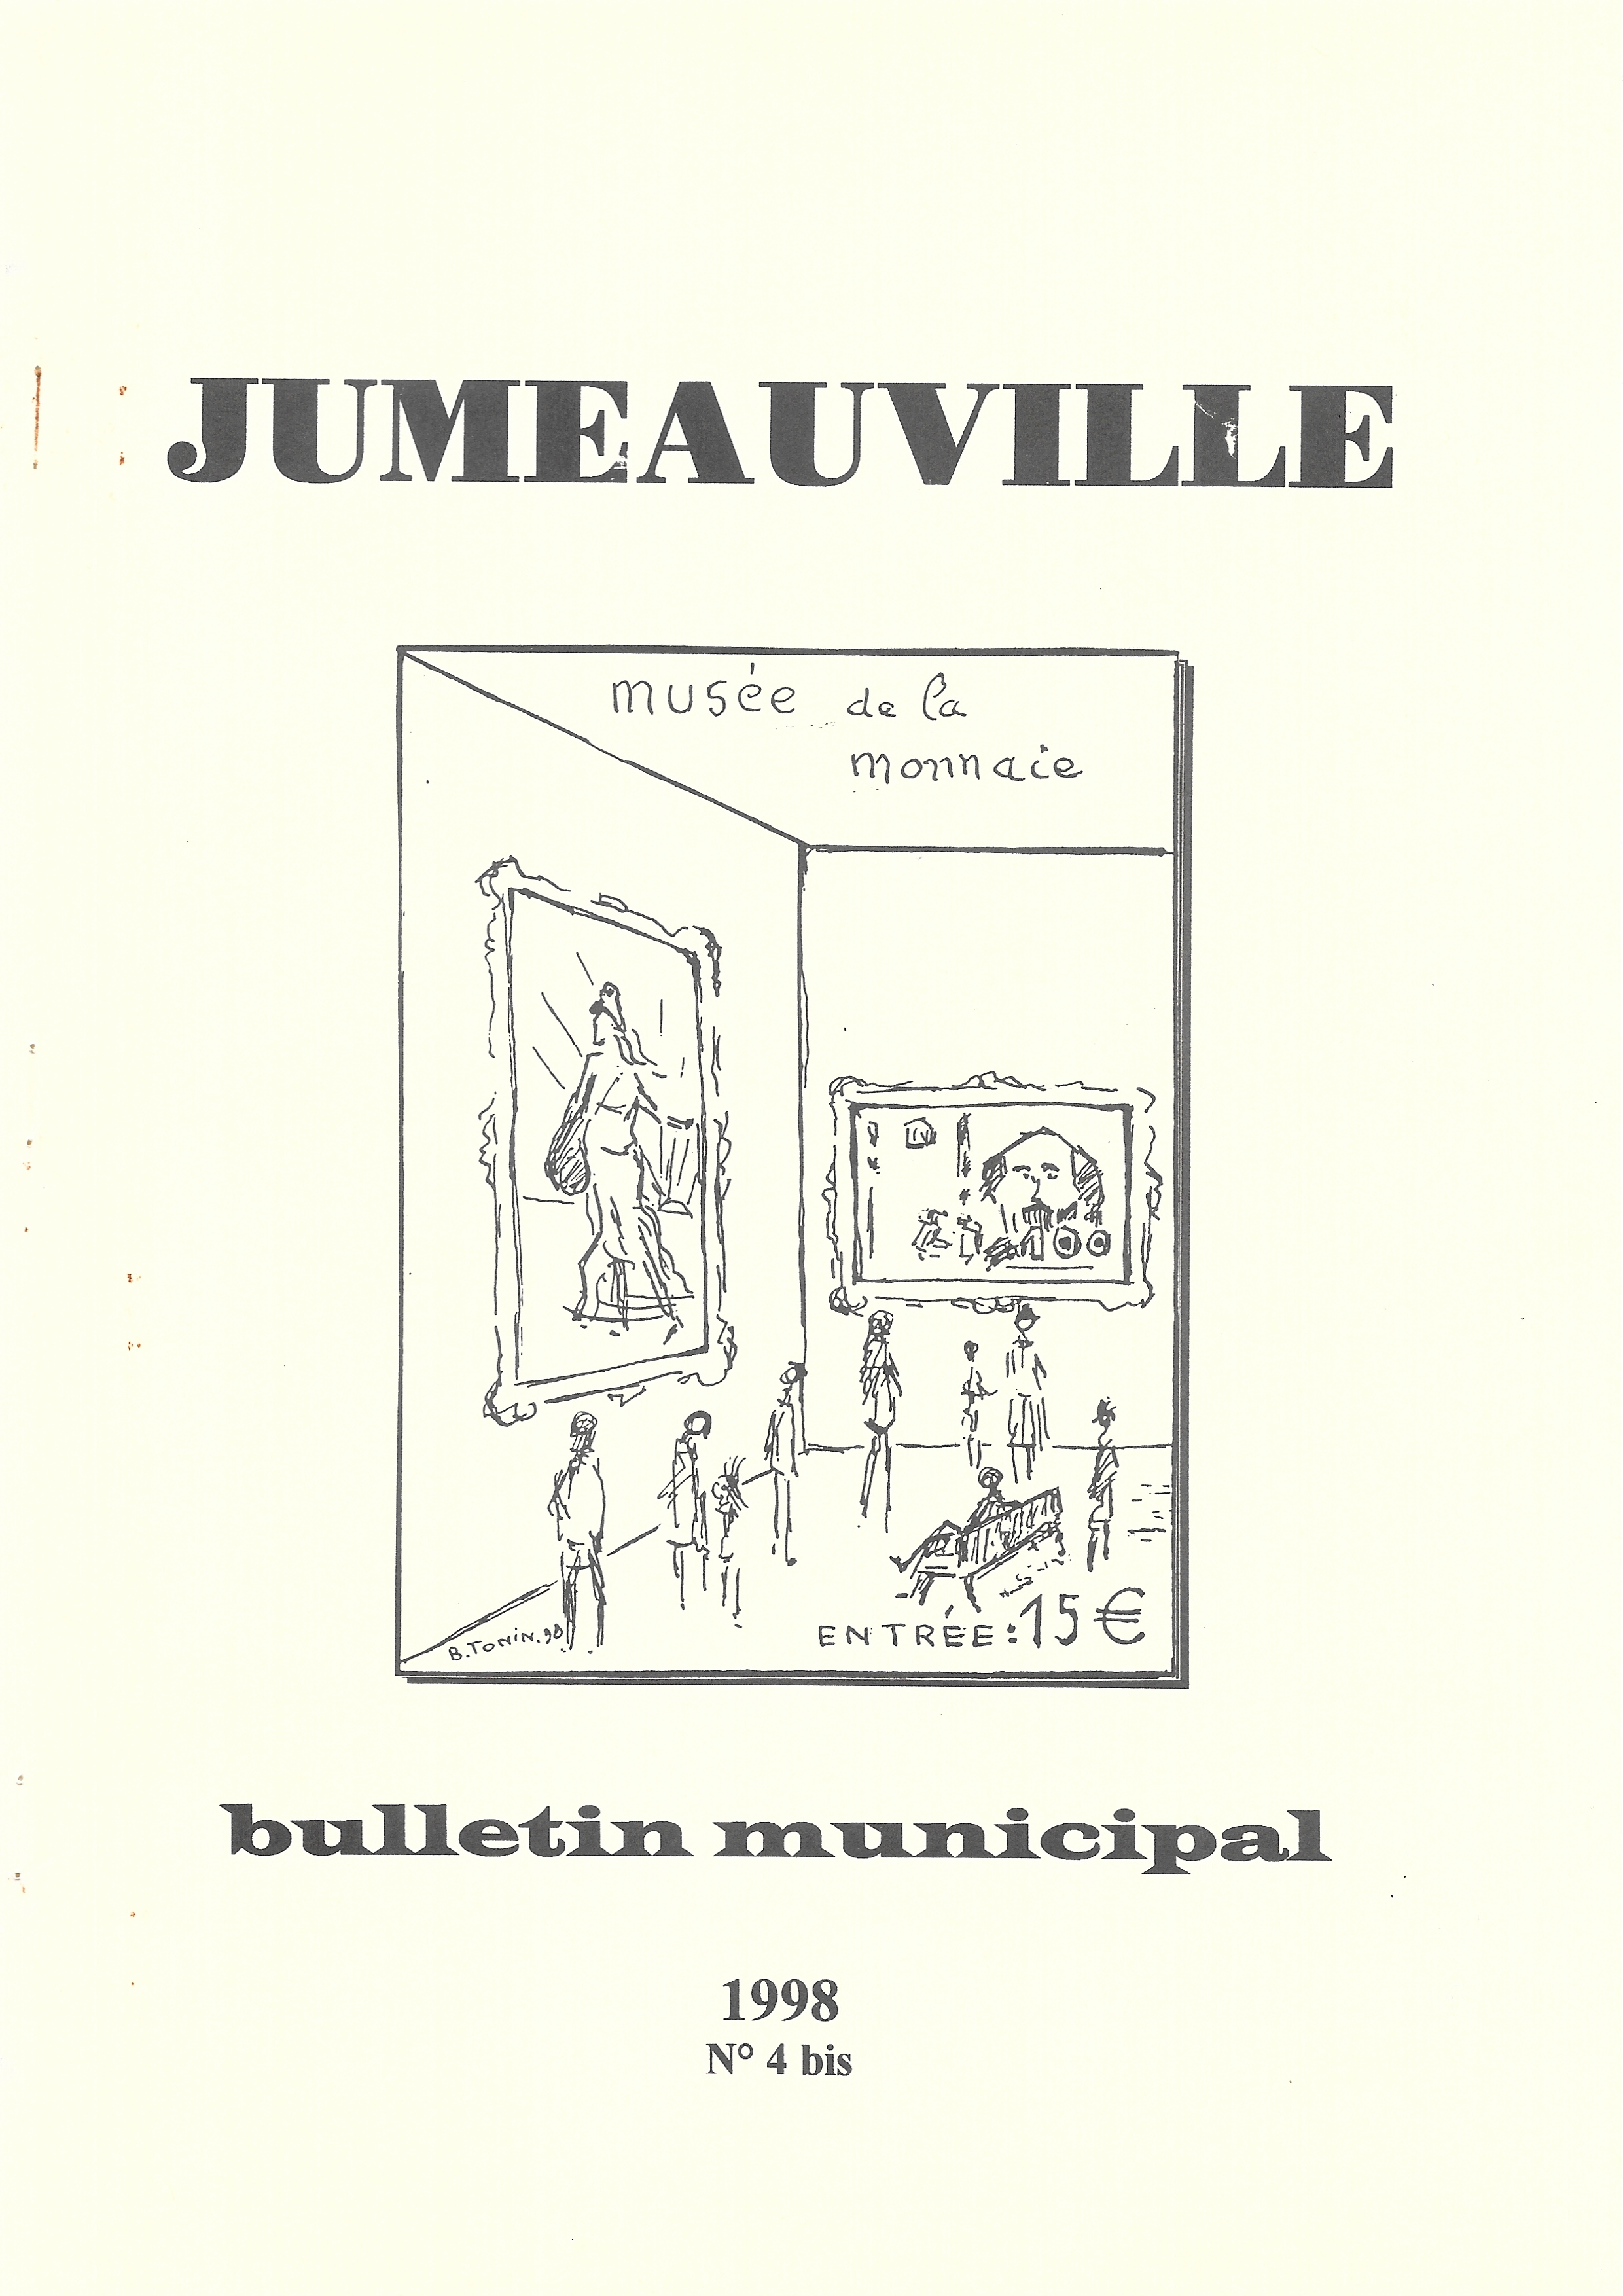 Bulletin Municipal 4bis 1998